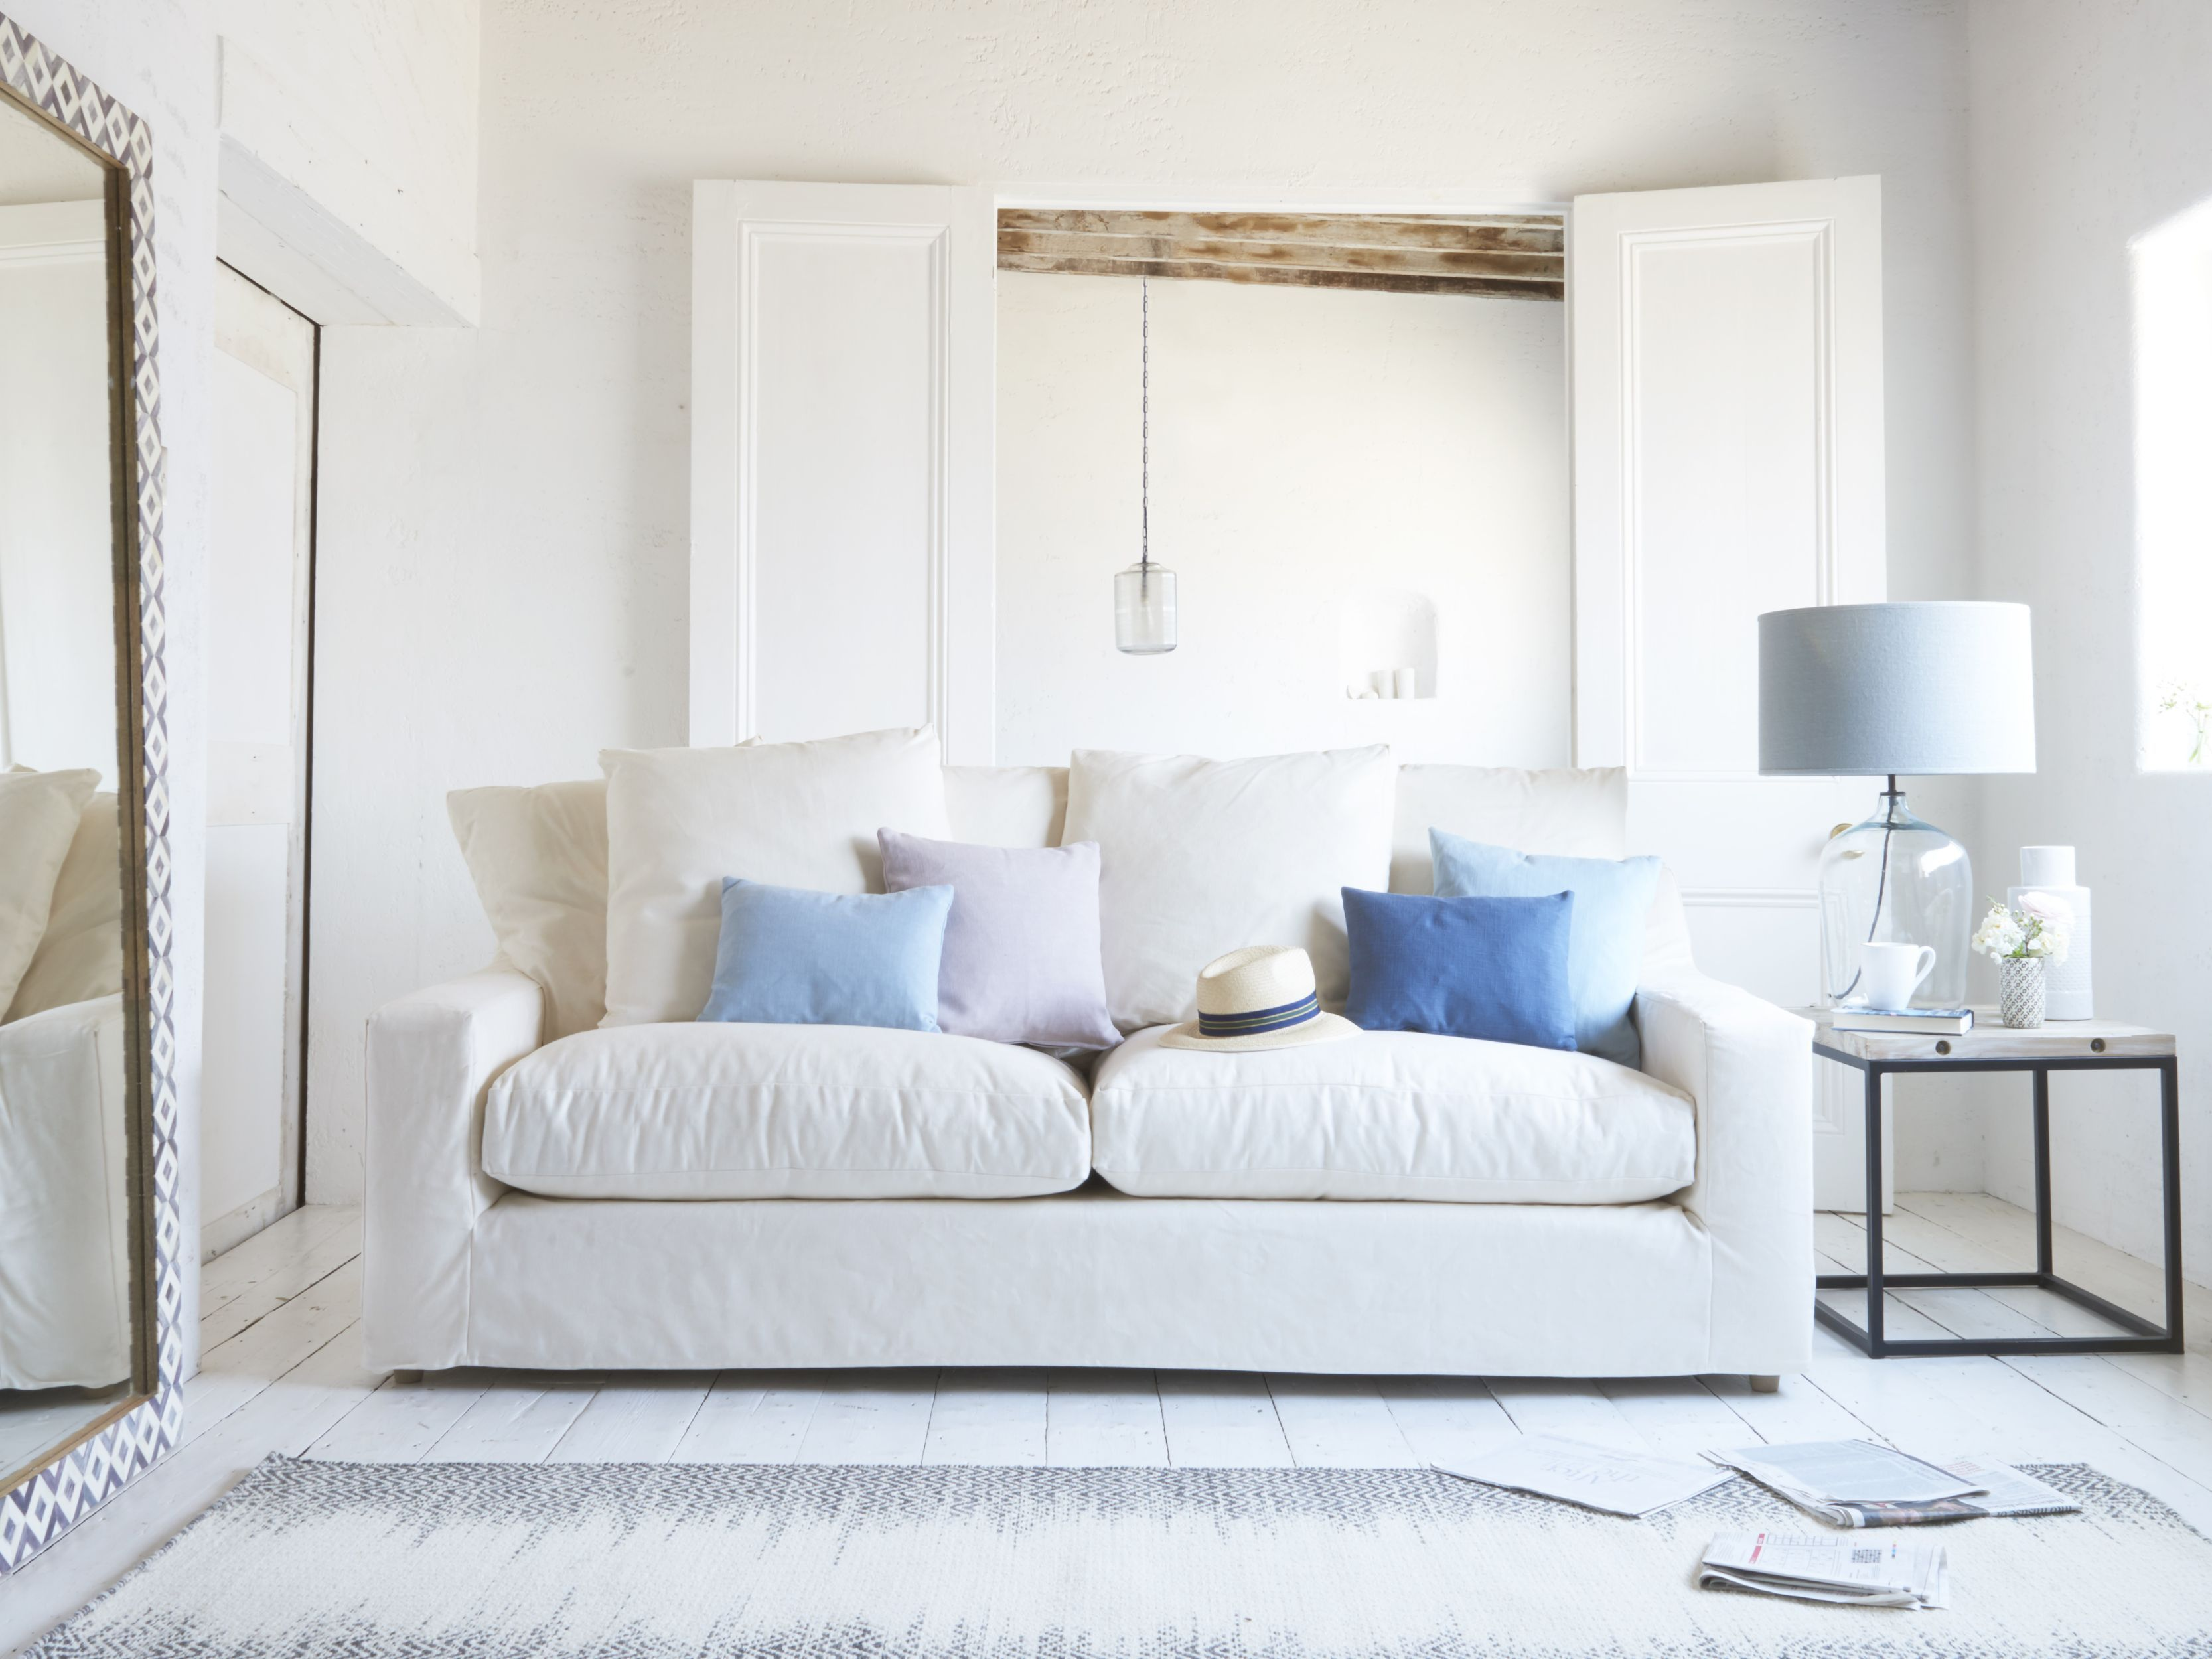 Cloud sofa, with oyster white clever linen removable covers, from £1,195, Loaf